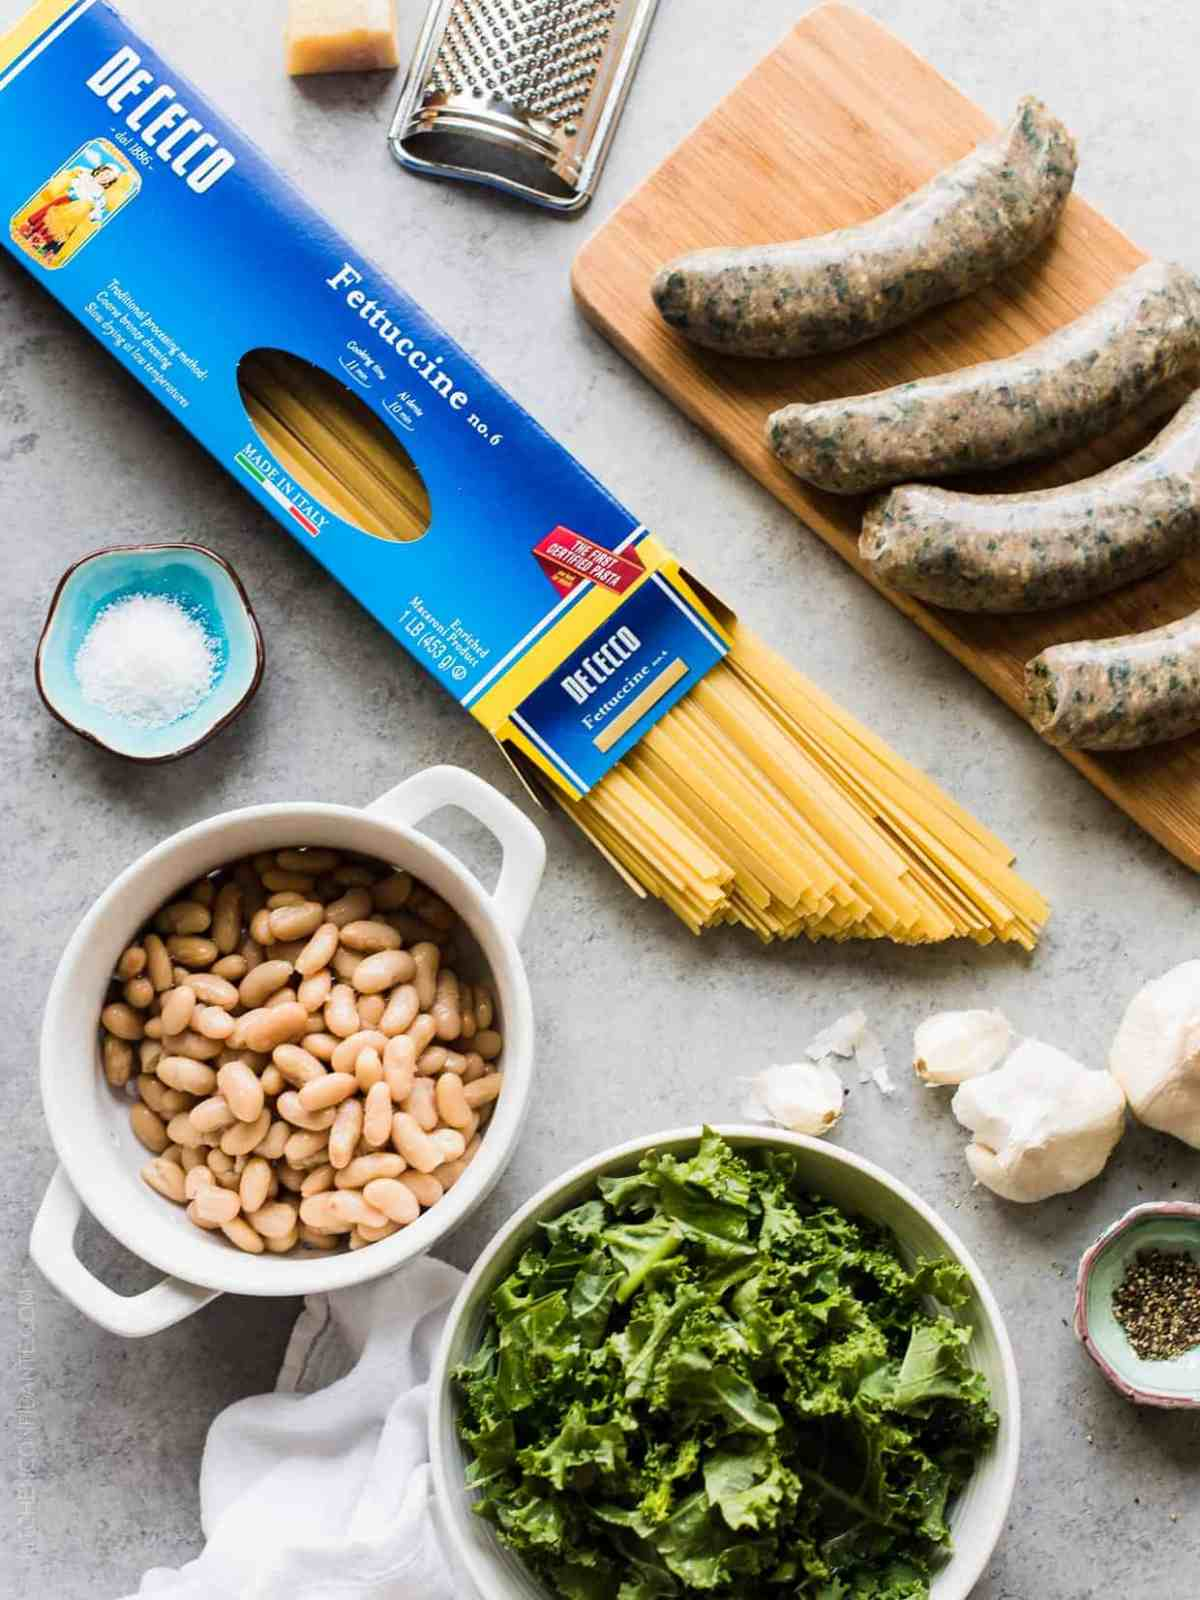 Ingredients assembled to prepare Fettuccine with Chicken Sausage, Kale and Cannellini Beans.